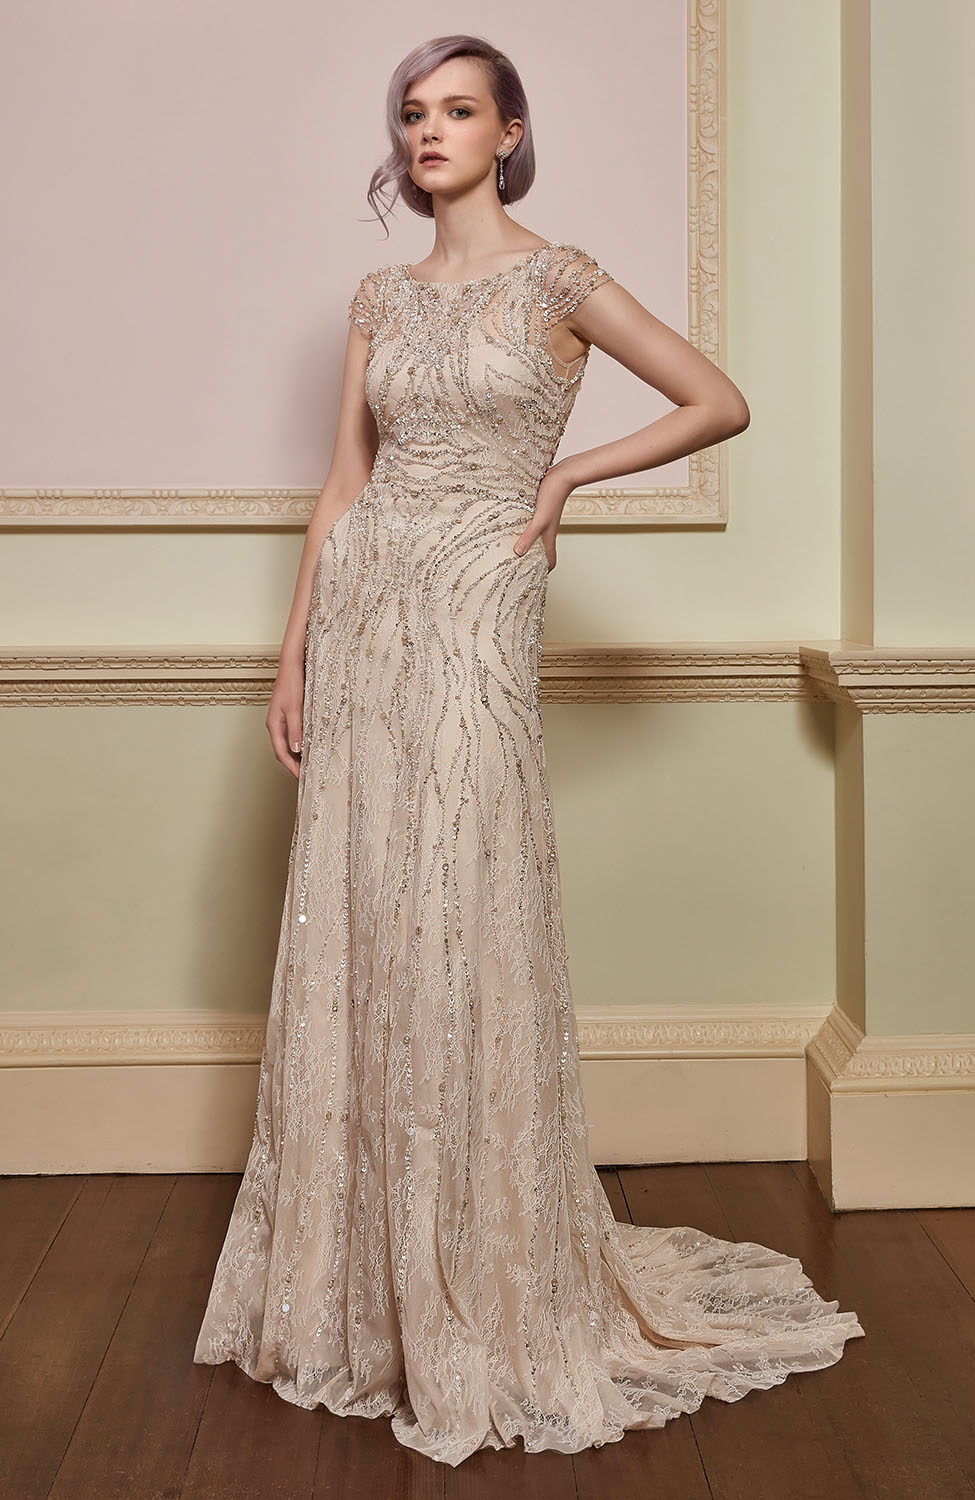 Jenny packham euphoria size 12 wedding dress price 3999 jenny packham euphoria 1 junglespirit Image collections